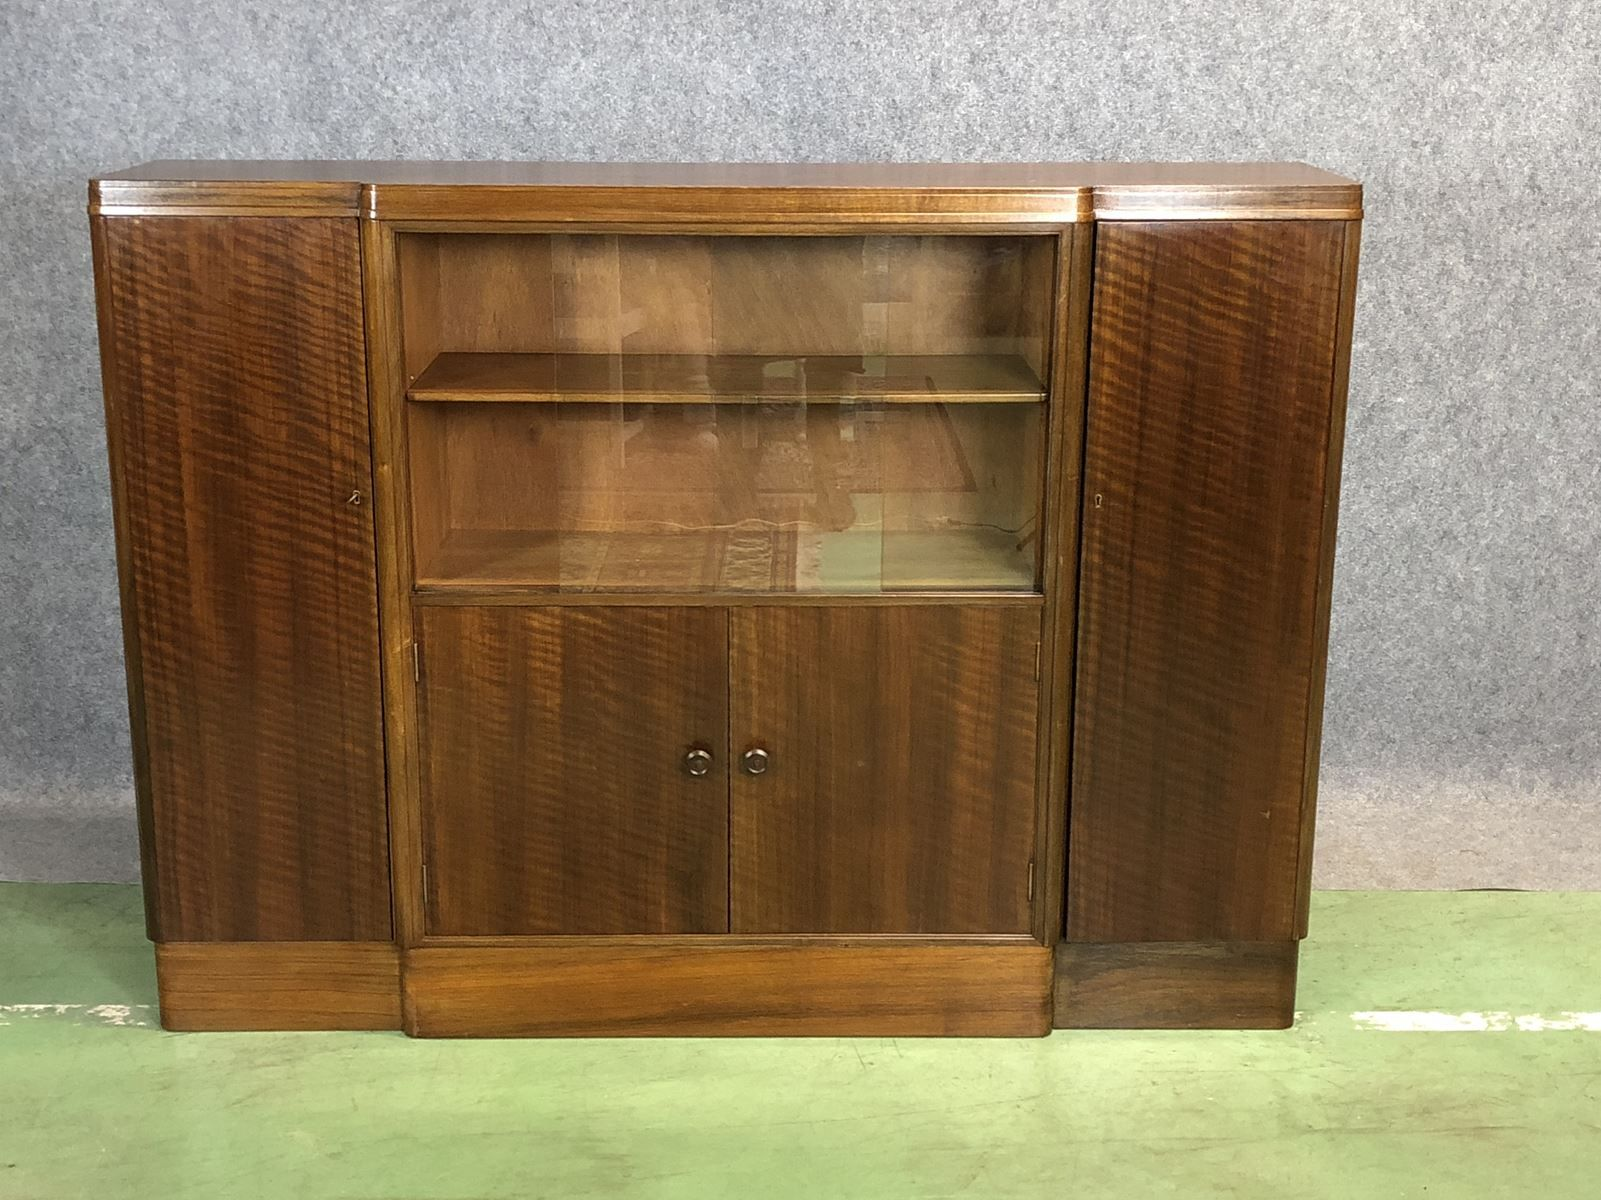 English Art Deco Buffet in Glazed Walnut for sale at Pamono